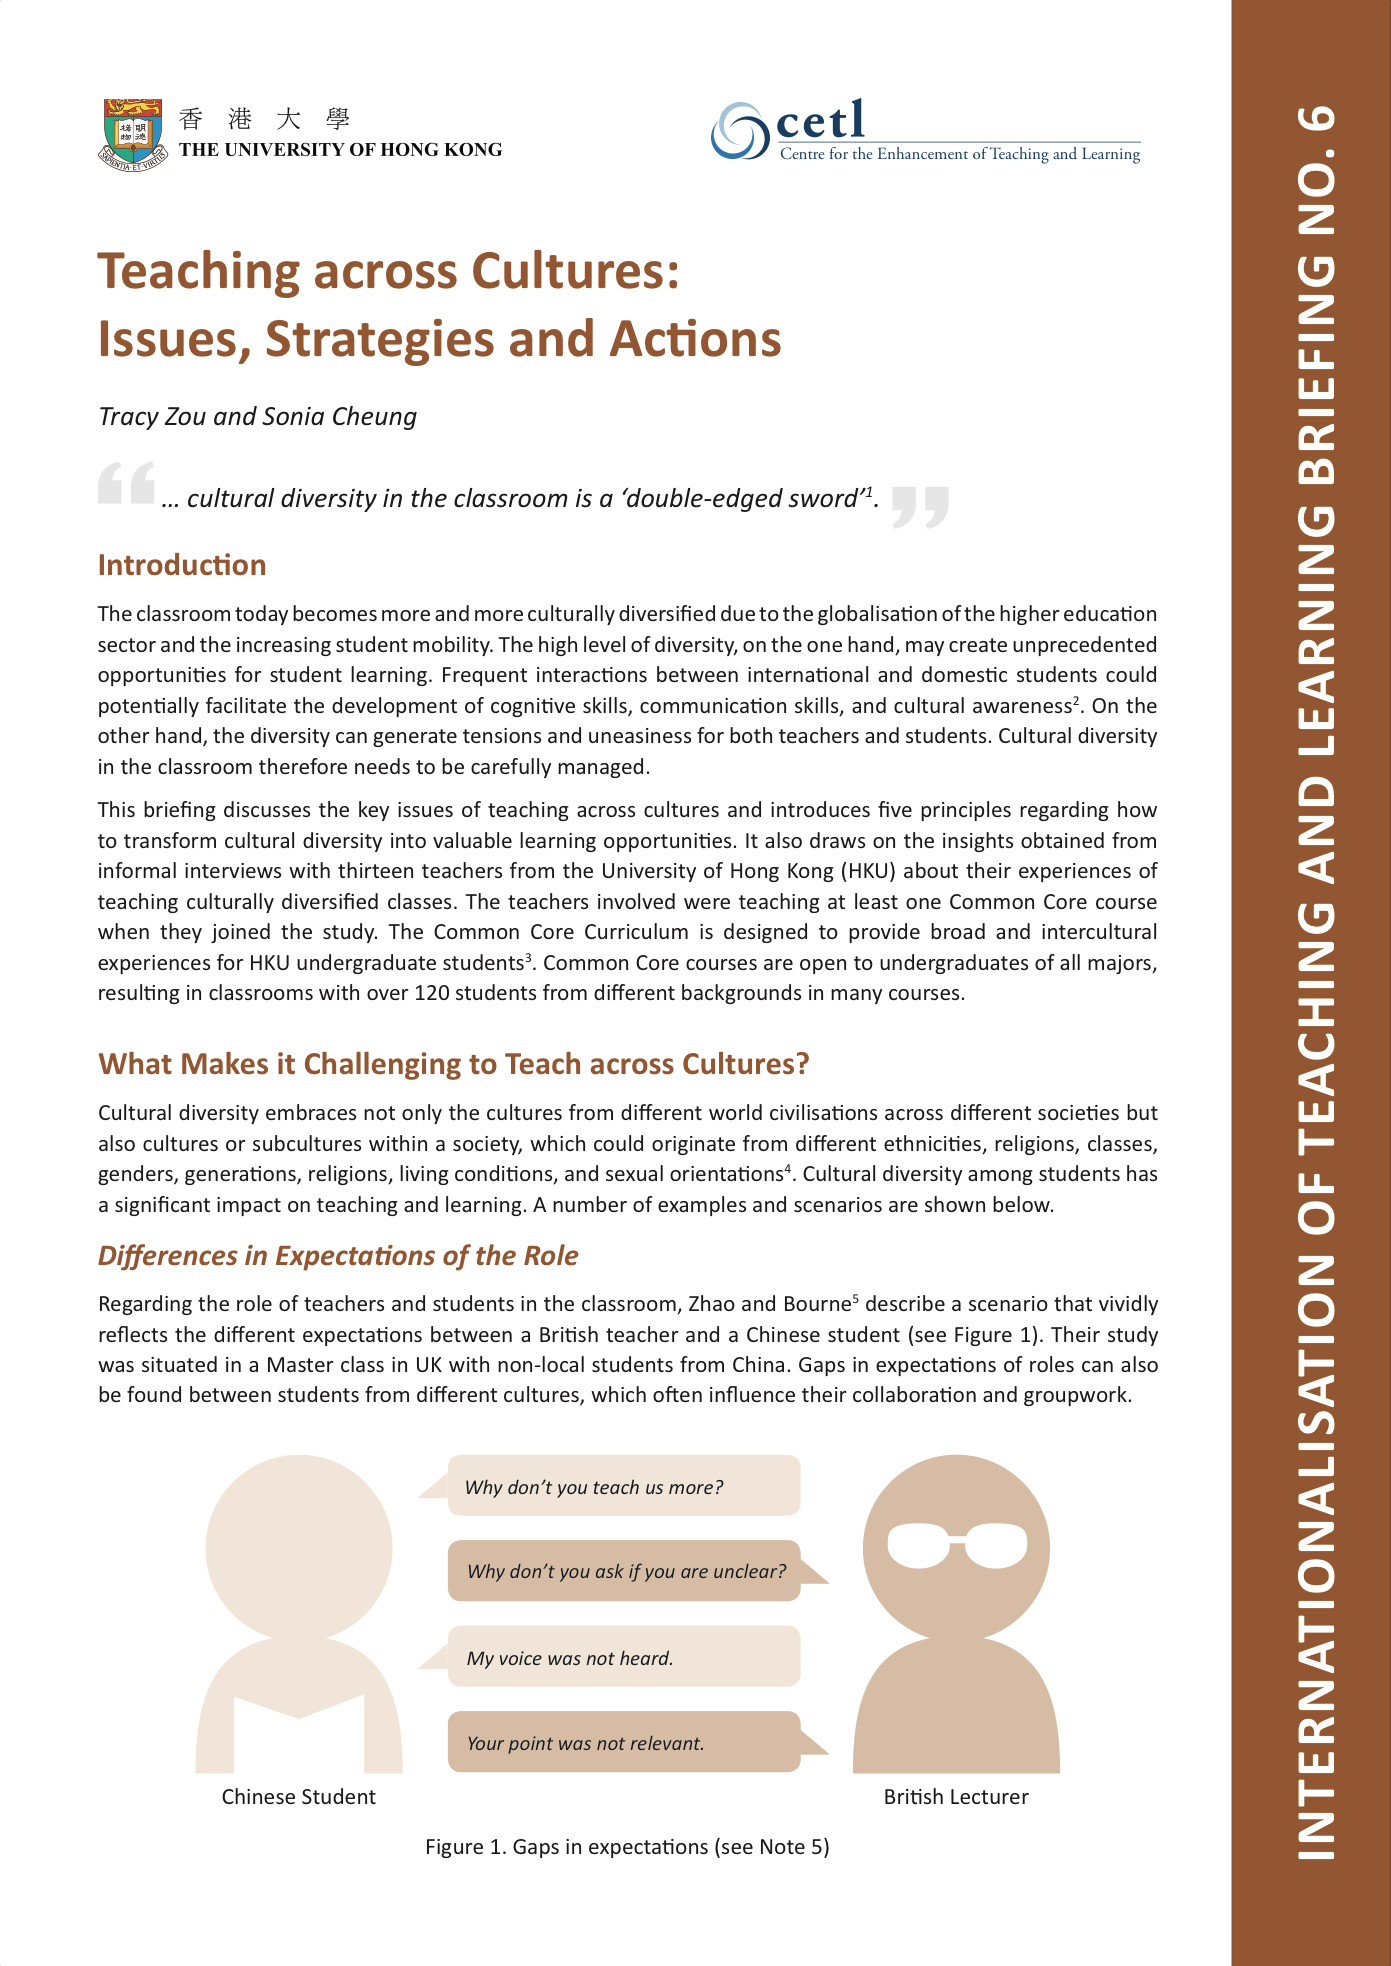 6. Teaching across Cultures: Issues, Strategies and Actions